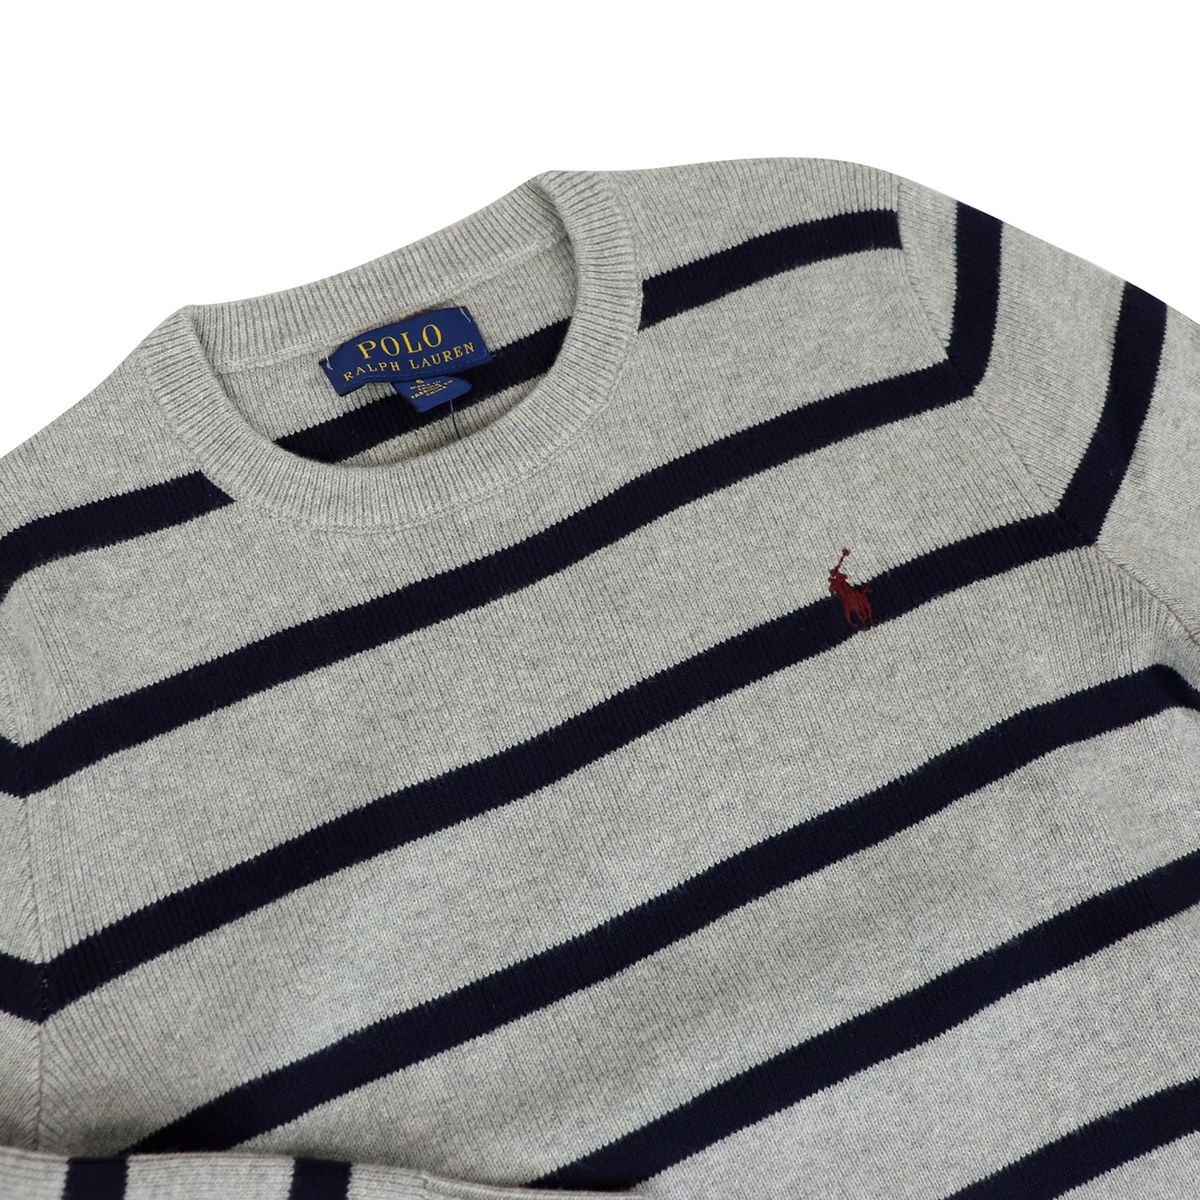 Crew-neck pullover in cotton with striped pattern Gray / blue Polo Ralph Lauren